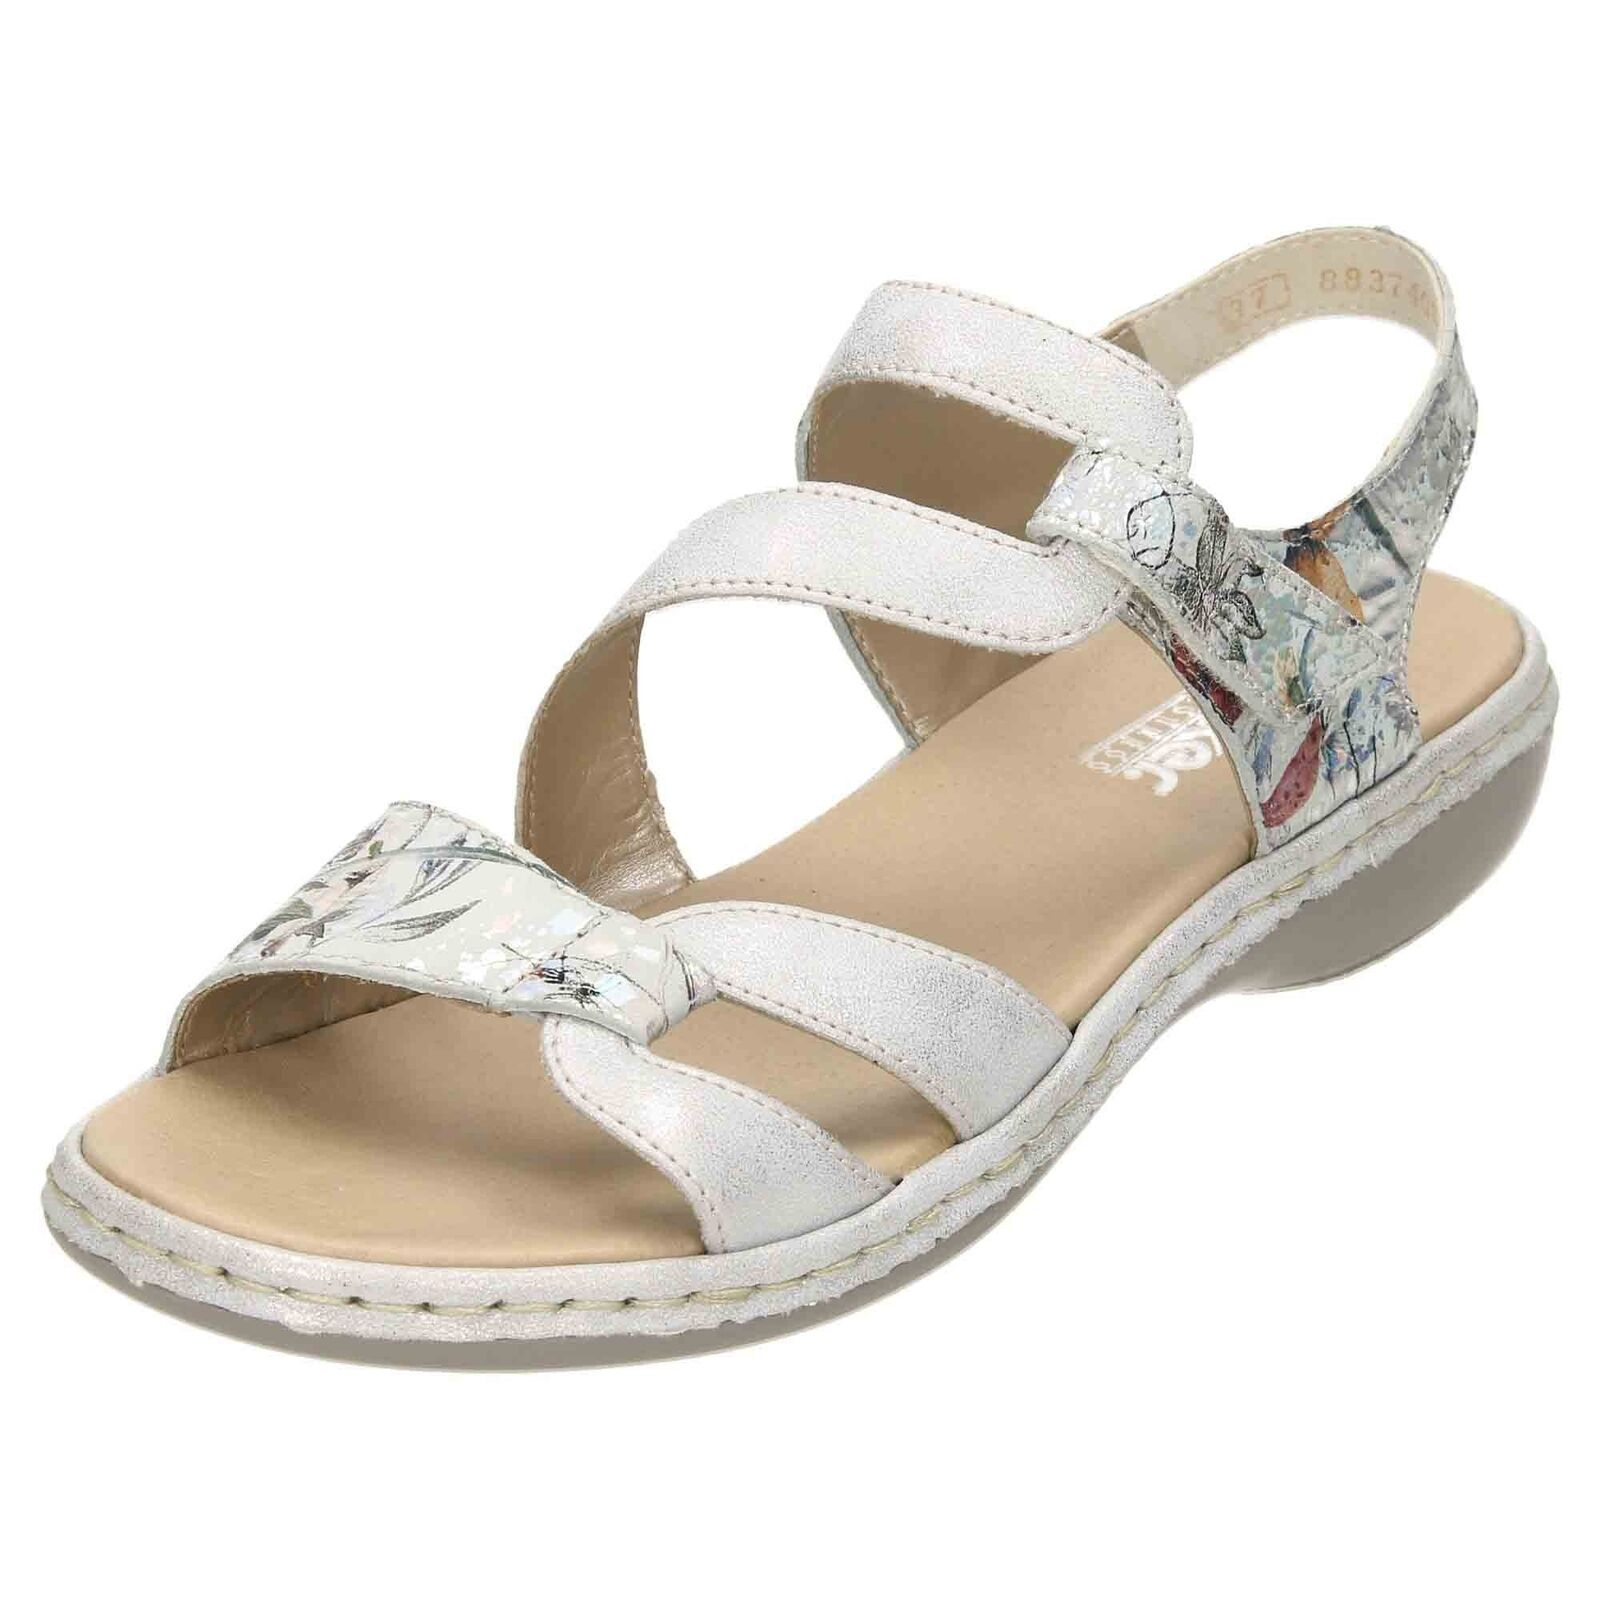 Rieker Slingback Leather Open Toe Sandals 65969-82 Rip Tape Low Wedge Strappy